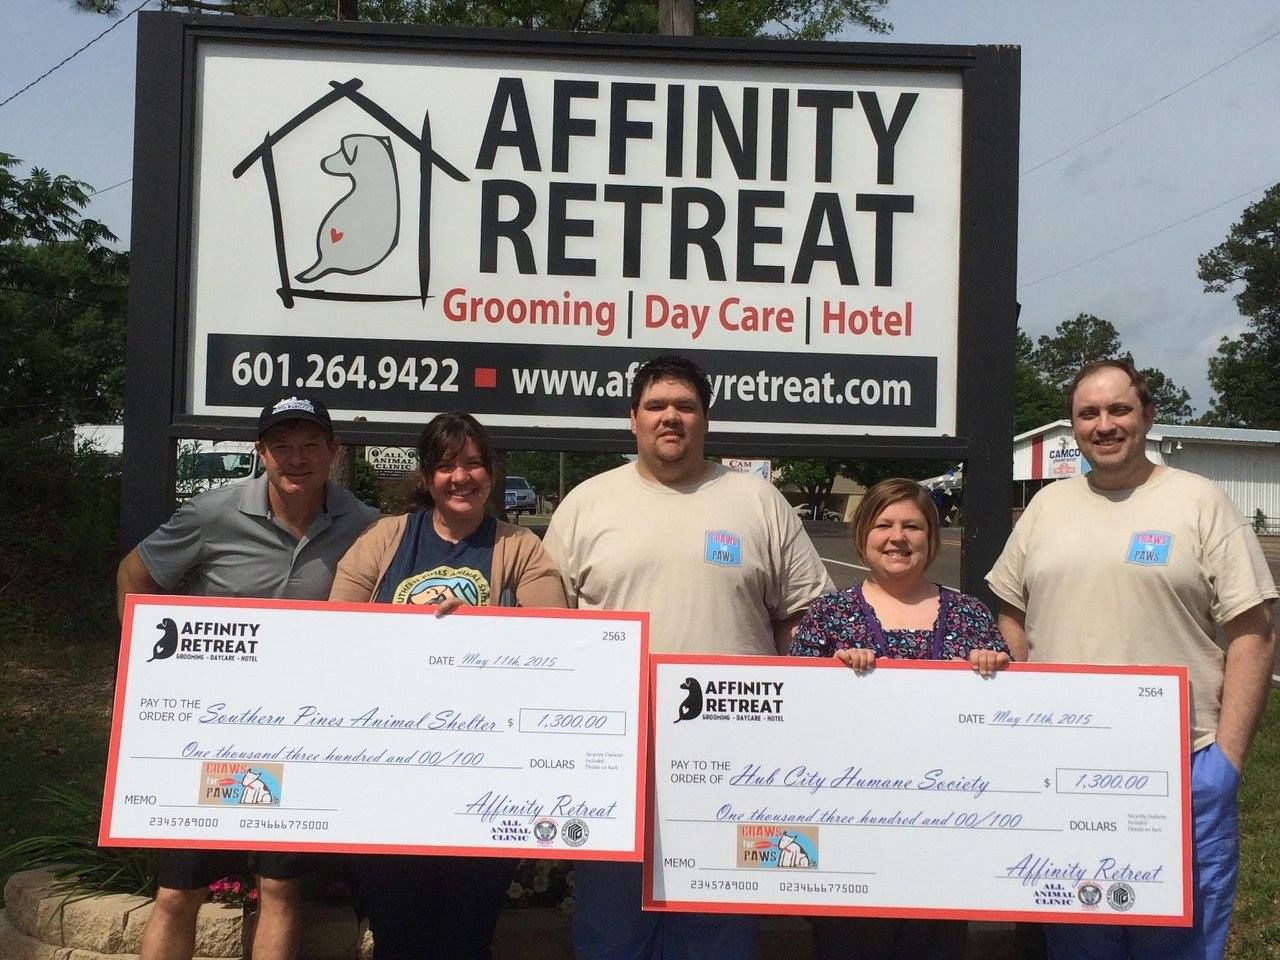 Affinity Retreat Pet Care Grooming, Daycare and Hotel